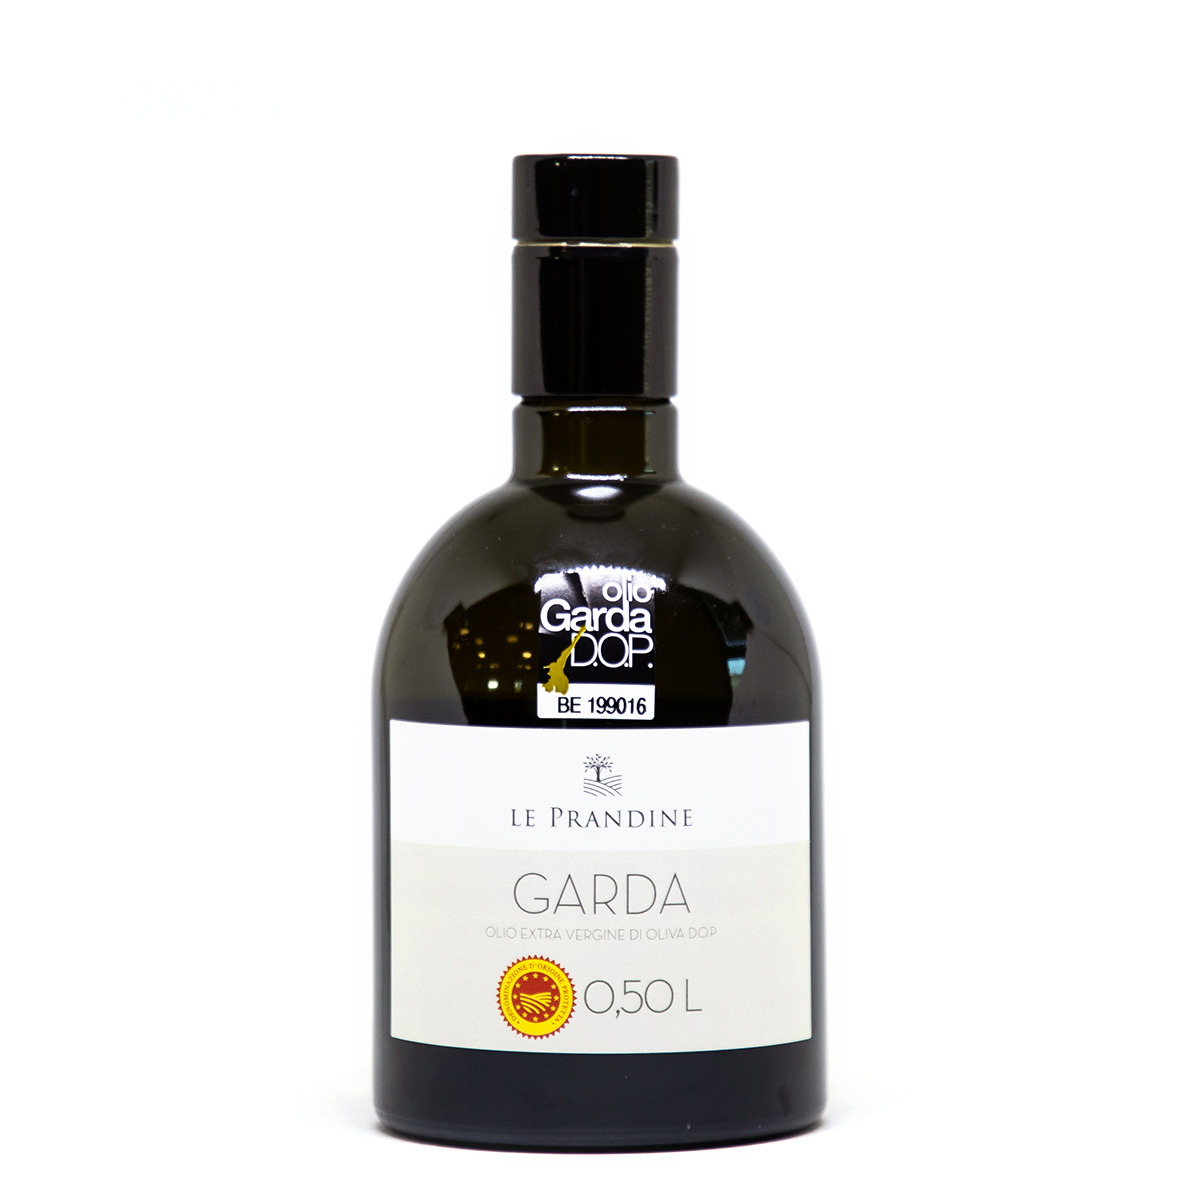 Garda DOP Extra Virgin Olive Oil, 0.50L